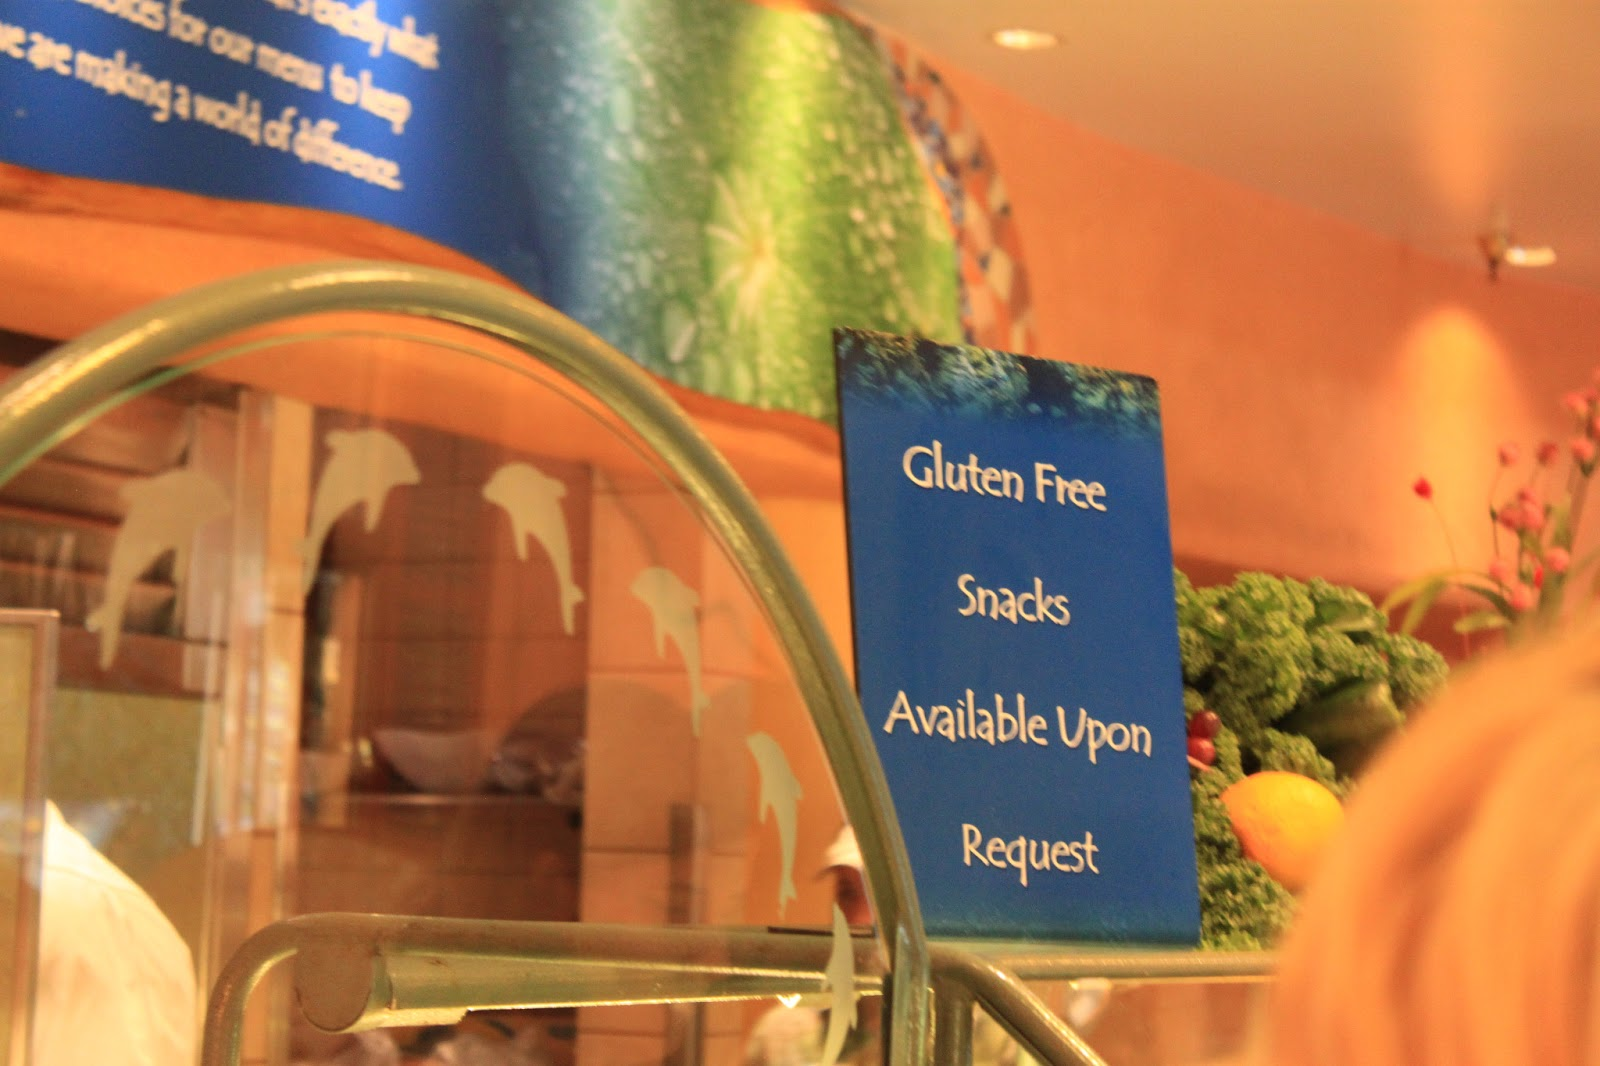 Discovery Cove and Seaworld gluten free dairy free